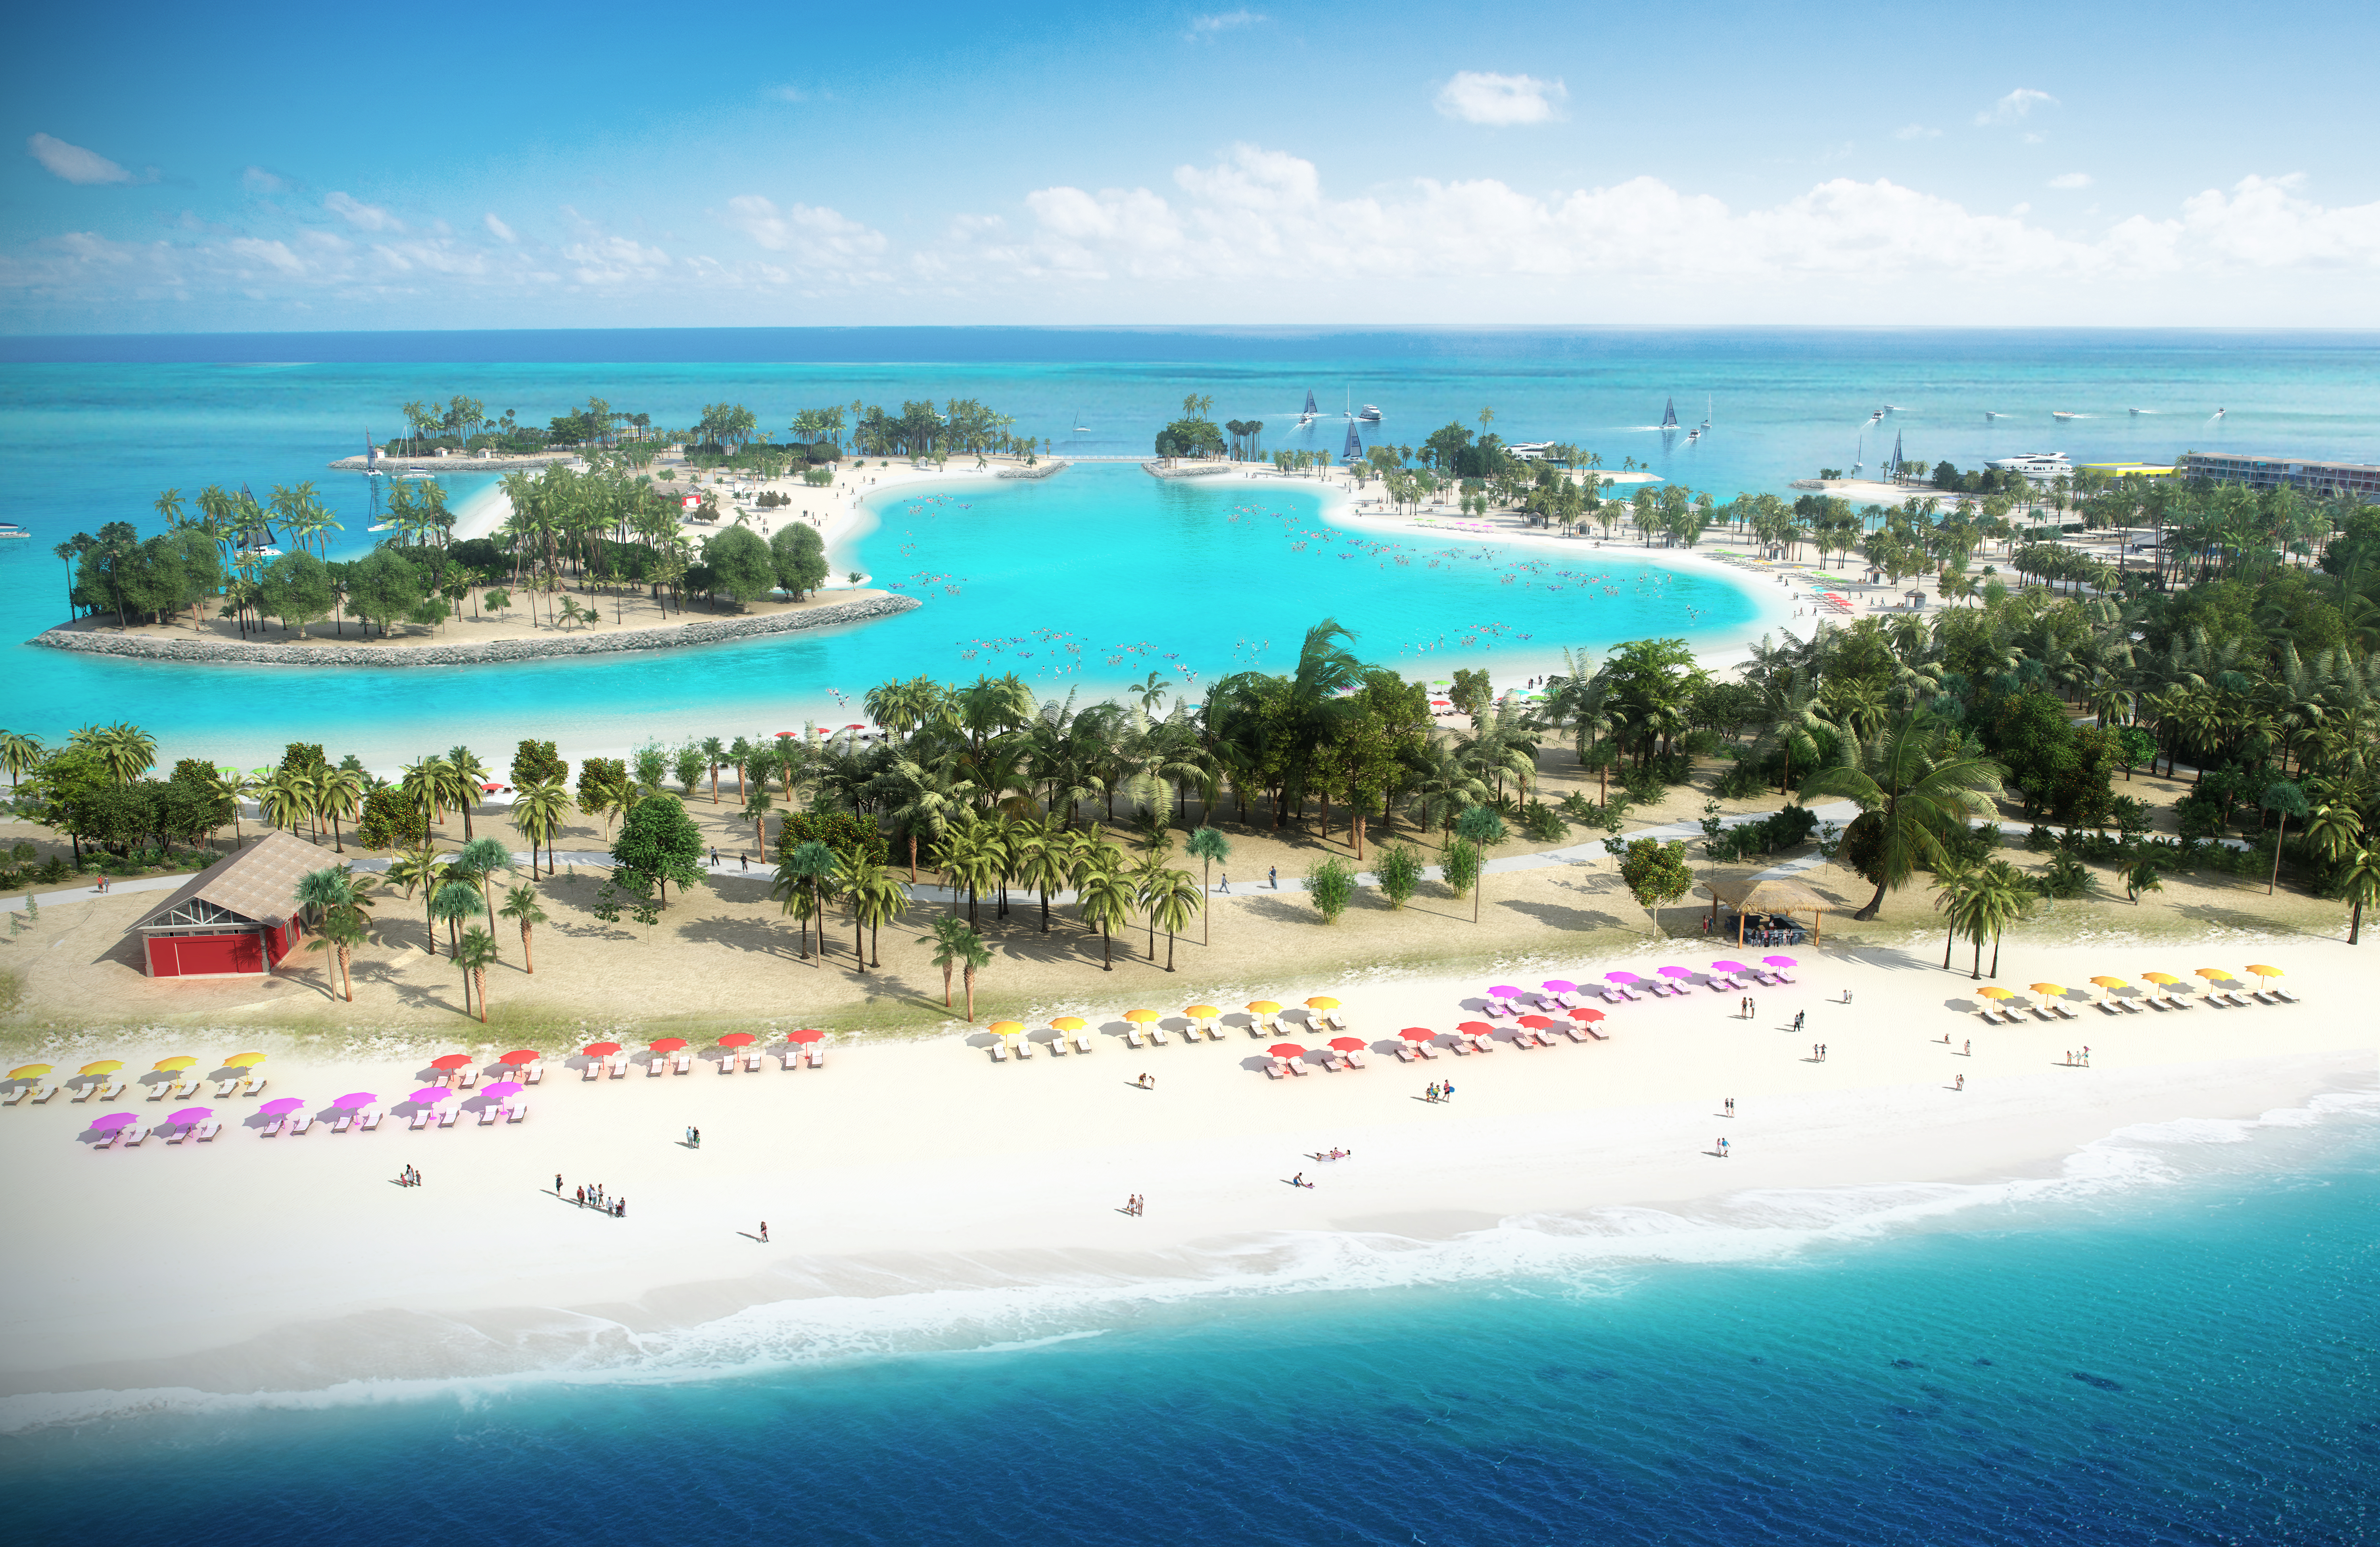 Ocean Cay MSC Marine Reserve features 7 beaches for guests